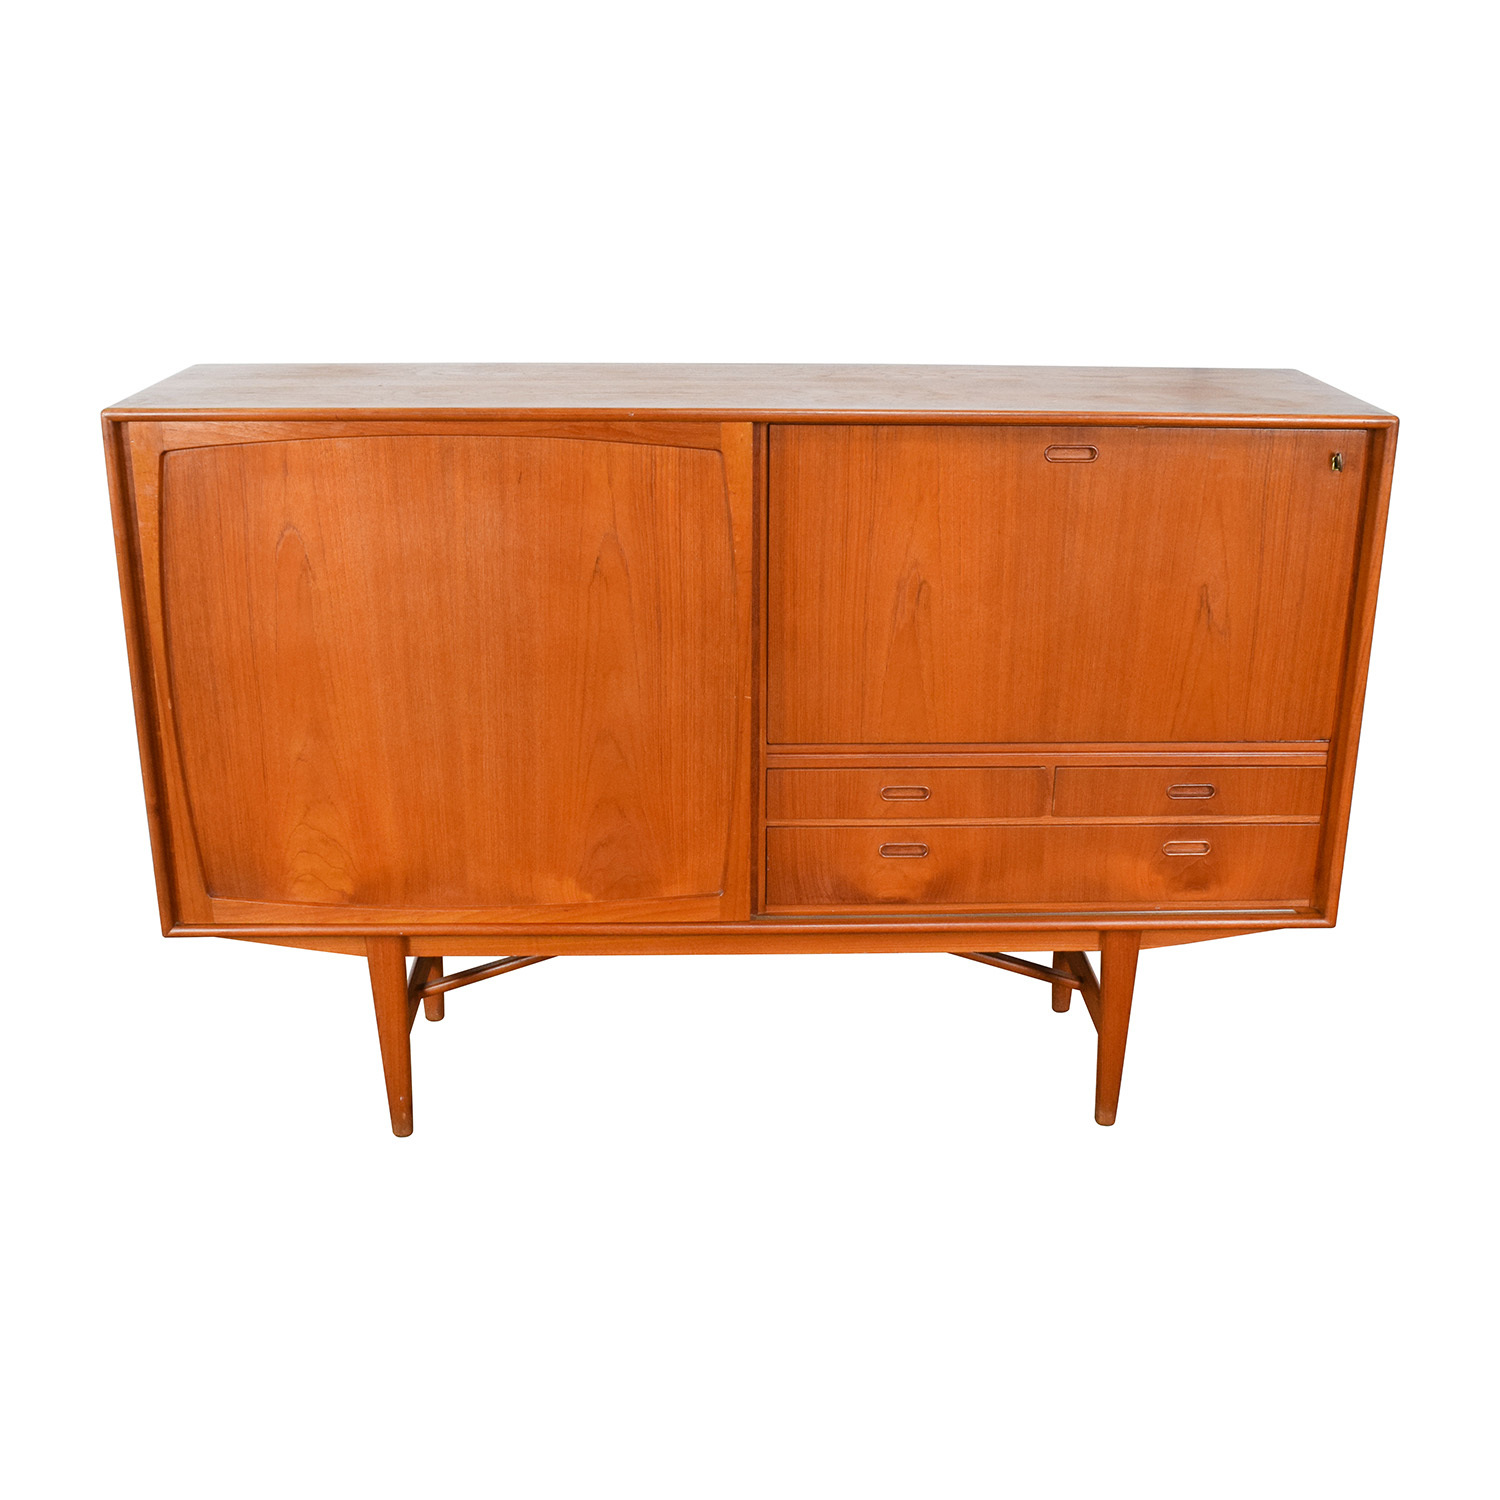 Teak Danish 1950s Custom Sideboard with Etched Glass Bar Interior sale